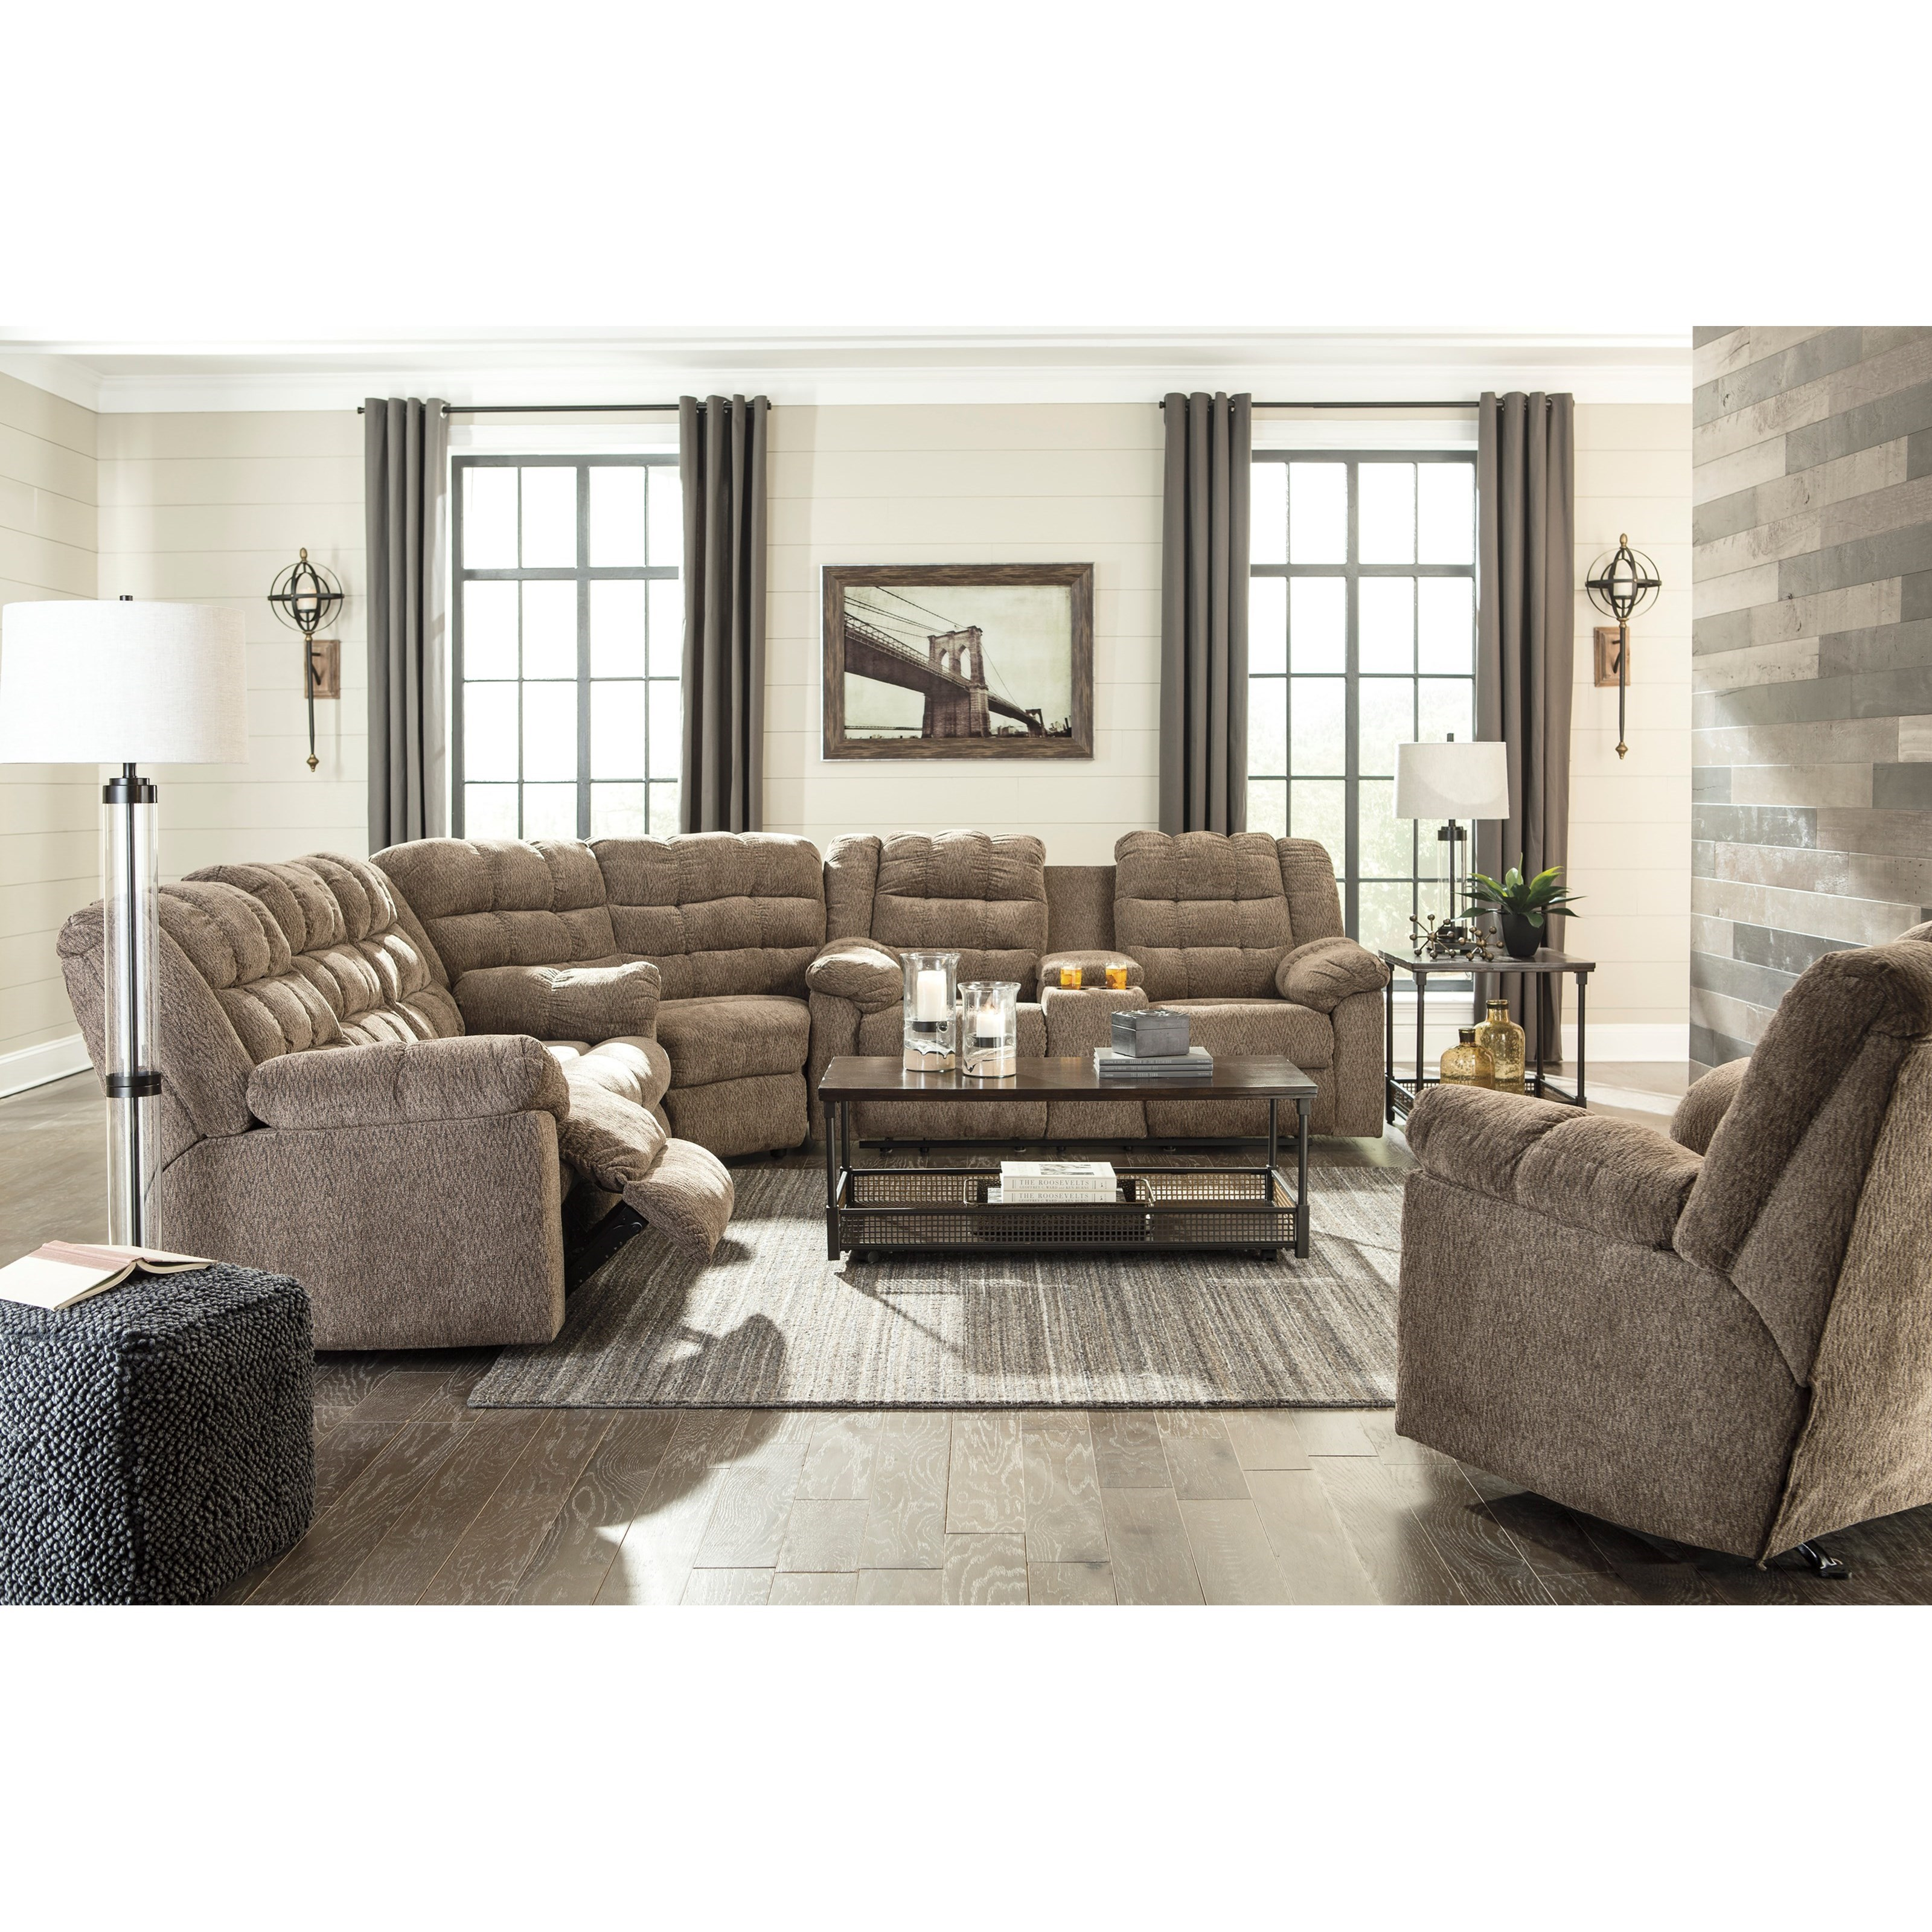 Workhorse Reclining Living Room Group by Ashley (Signature Design) at Johnny Janosik